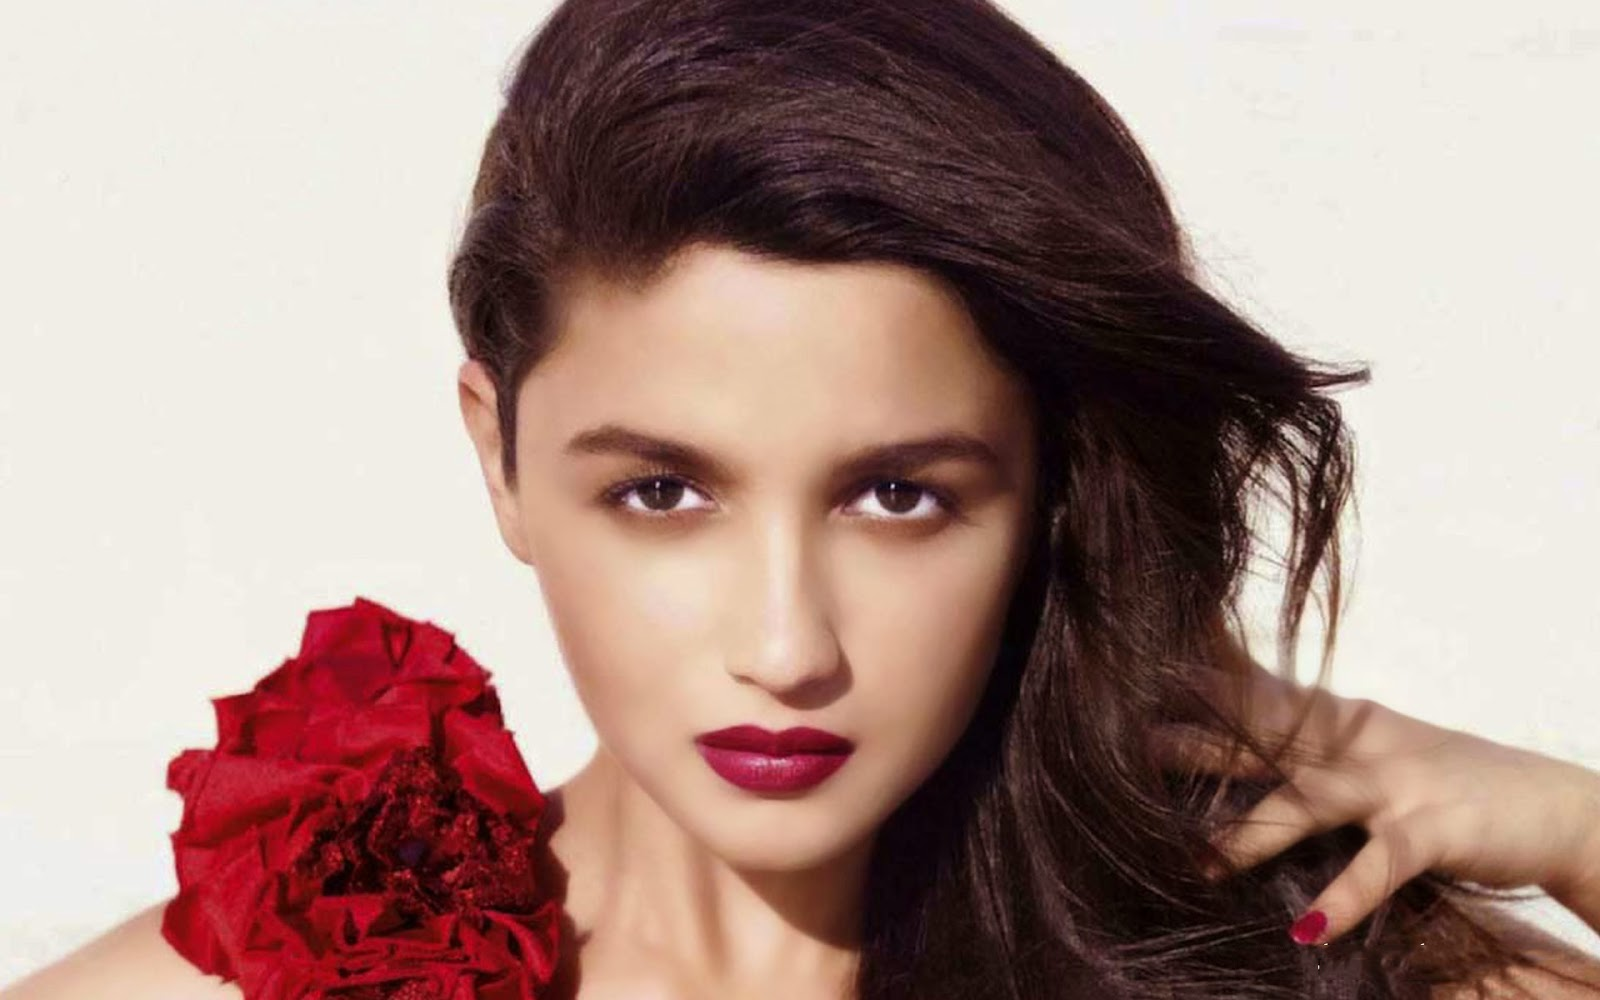 best images and wallpapers of Alia Bhatt lovely pics also